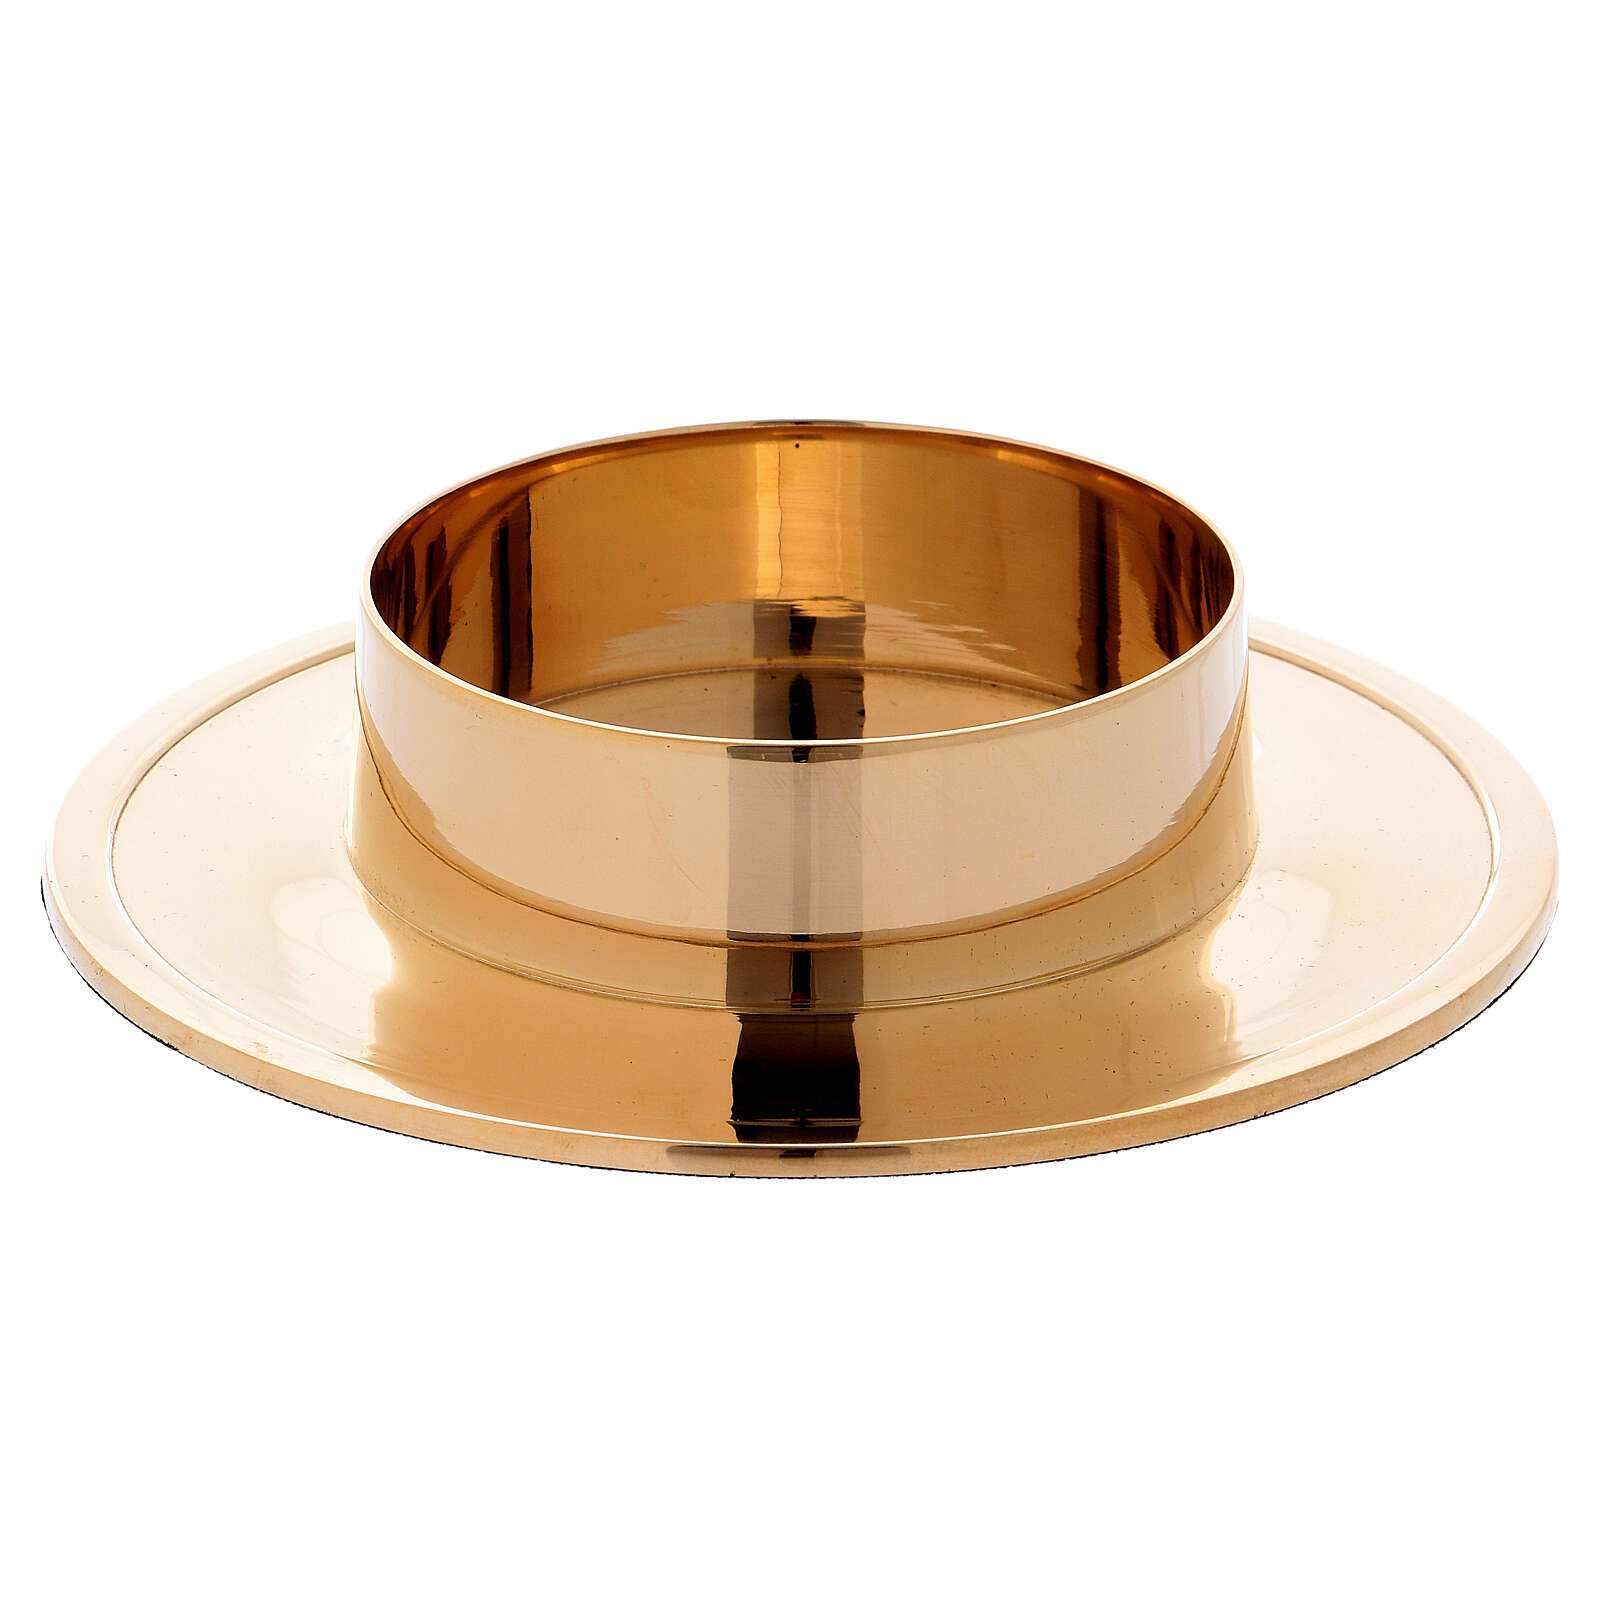 Simple candlestick in gold plated brass d. 3 in 4